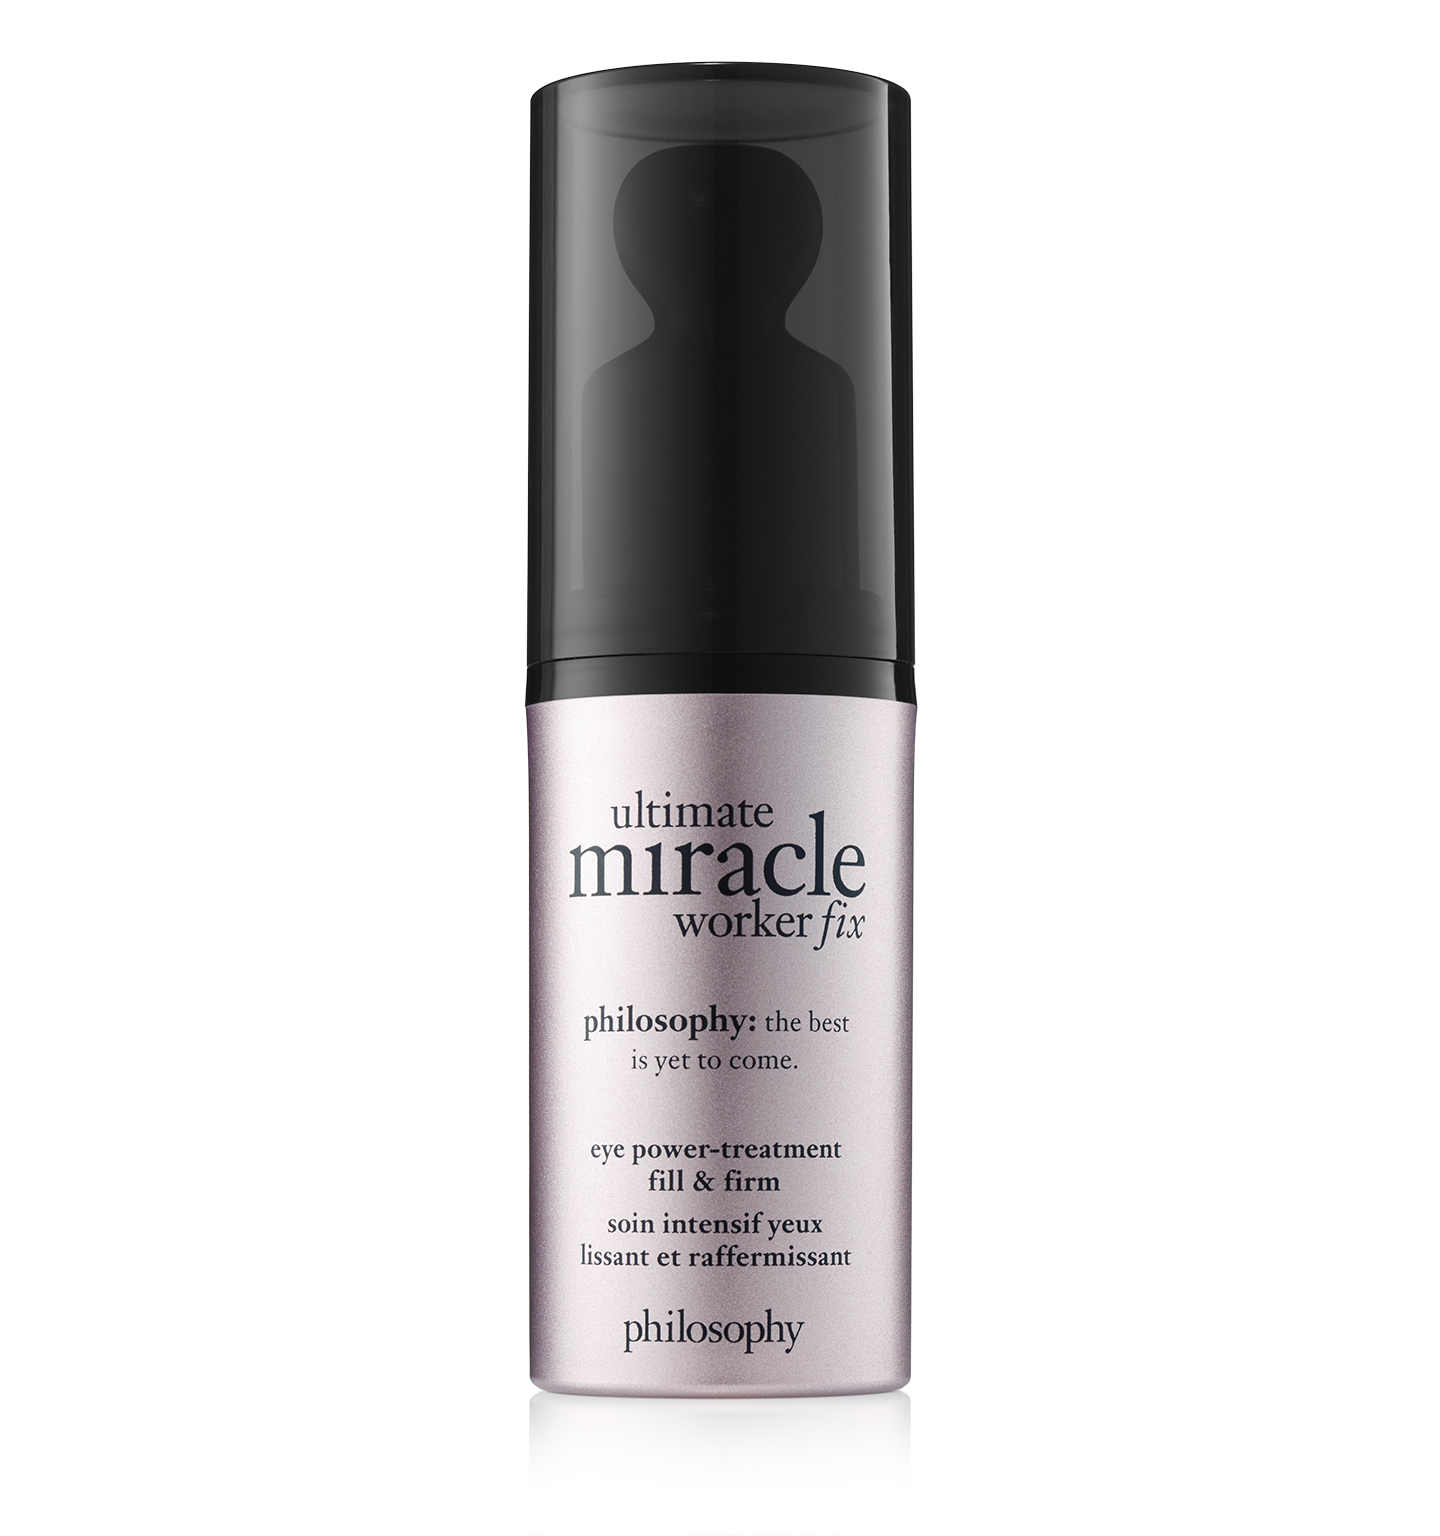 ultimate miracle worker fix retinol eye fill & firm treatment